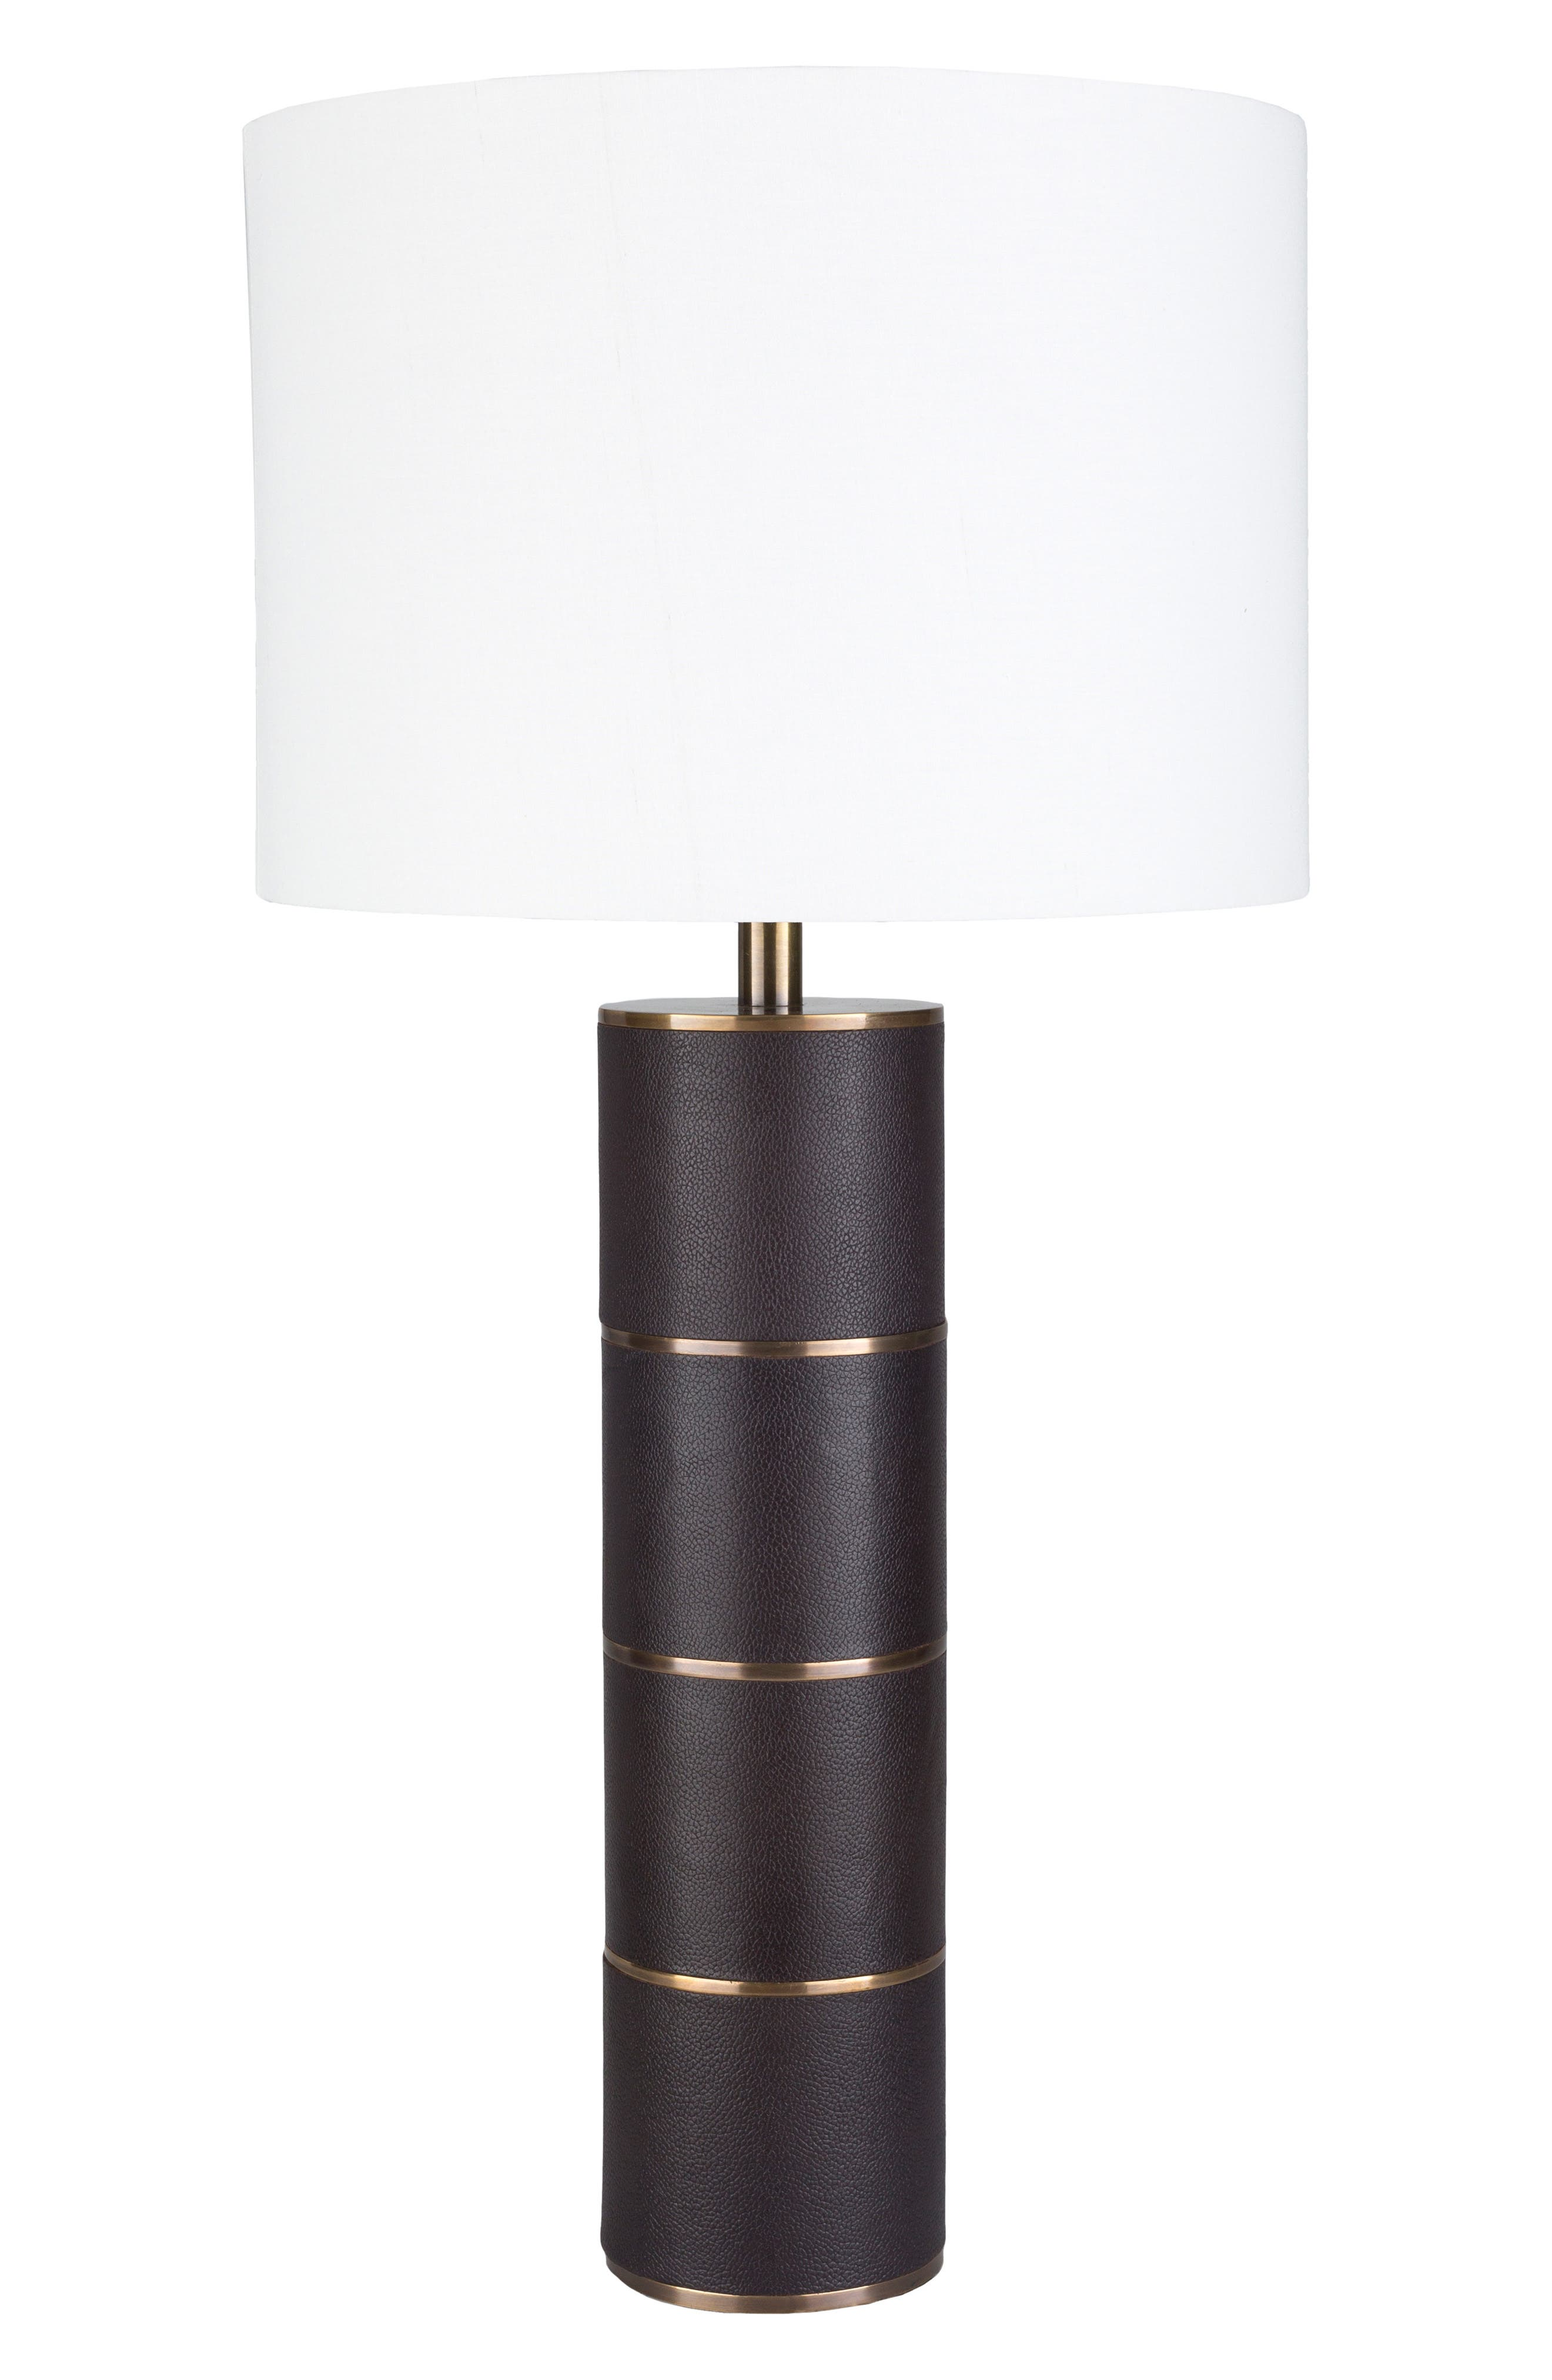 Surya Home Andrews Table Lamp